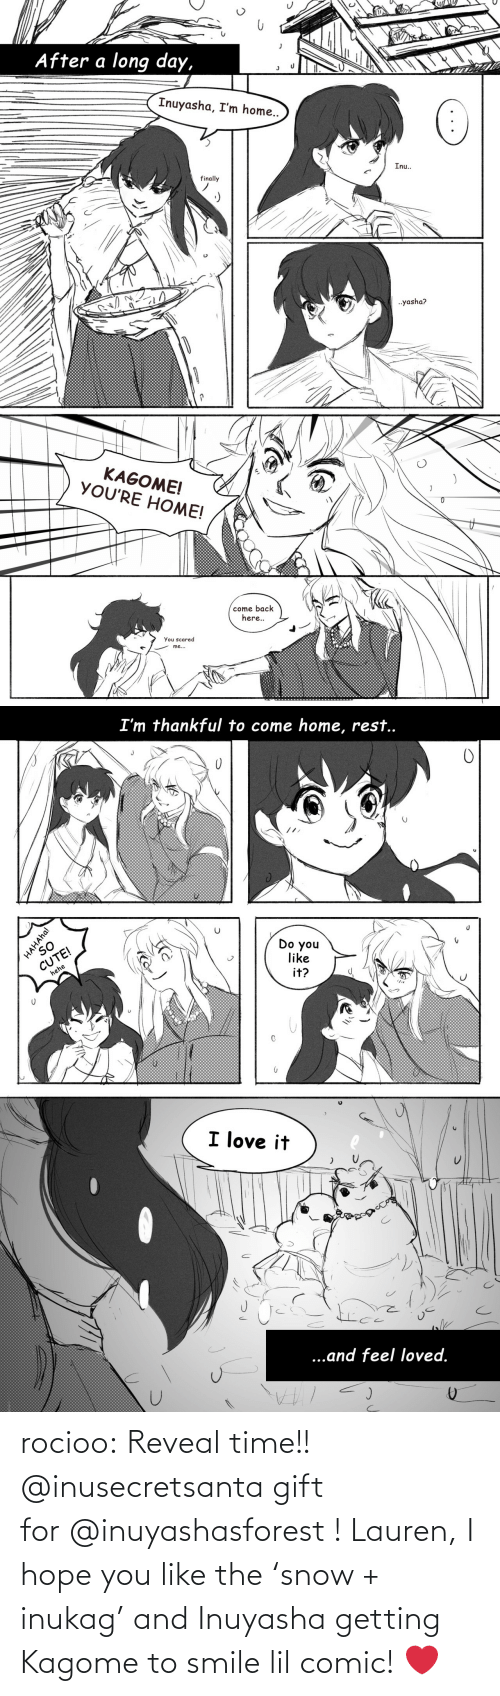 Getting: rocioo: Reveal time!! @inusecretsanta gift for @inuyashasforest ! Lauren, I hope you like the 'snow + inukag' and Inuyasha getting Kagome to smile lil comic! ❤